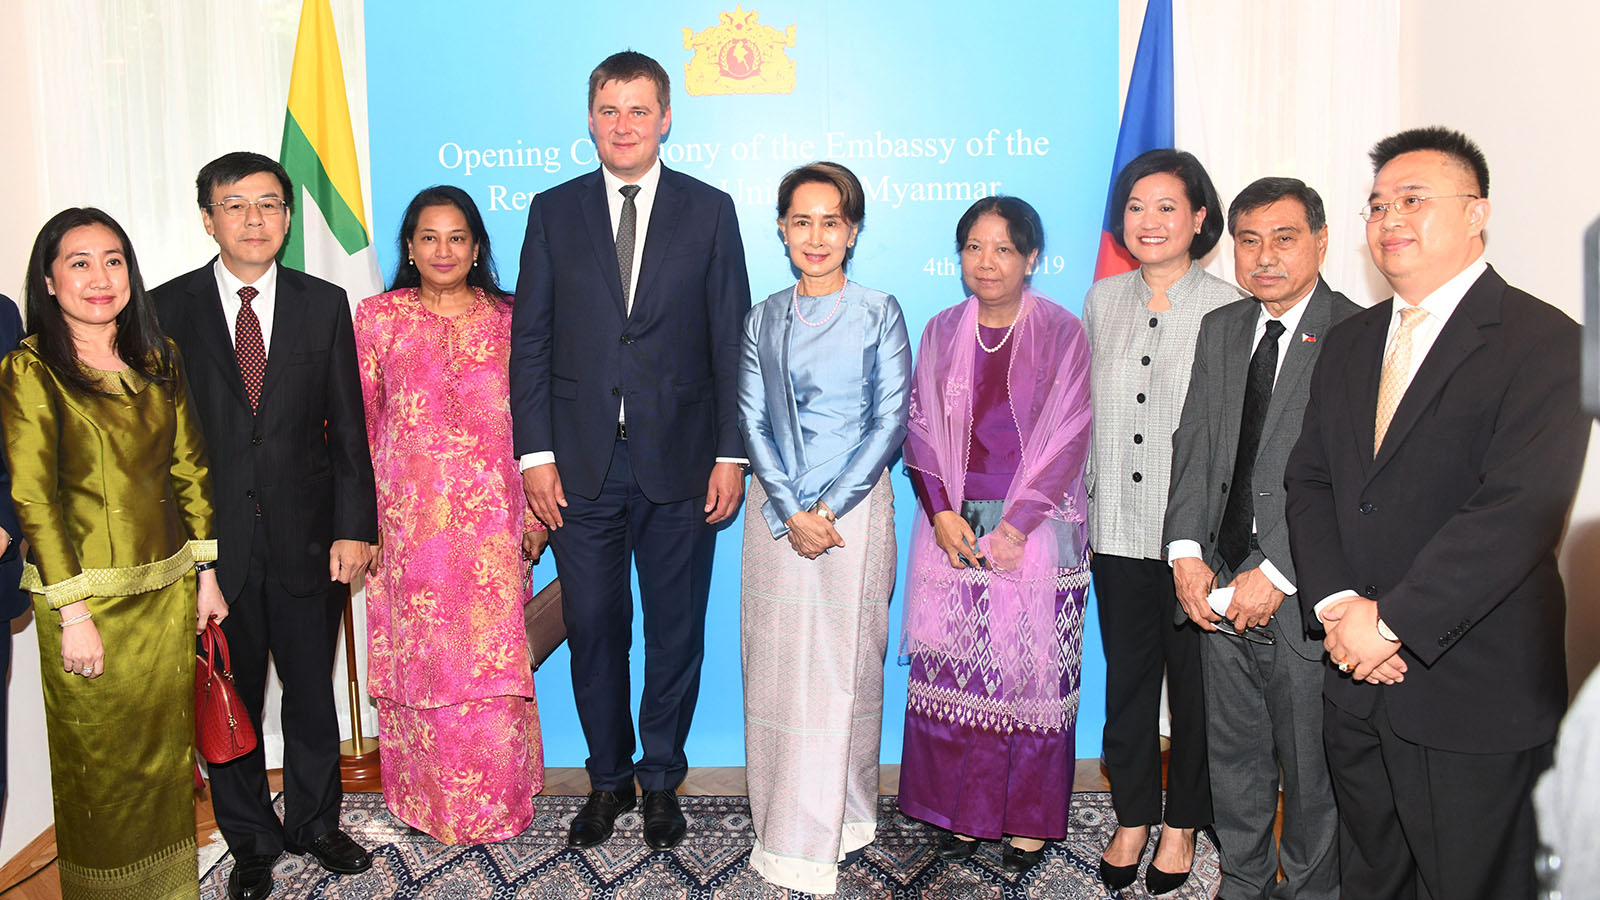 State Counsellor Daw Aung San Suu Kyi (centre) and Czech Republic Foreign Minister Mr. Tomas Petricek, (4th from left) pose for documentary photo together with Ambassadors from ASEAN nations in Prague yesterday. Photo: MNA